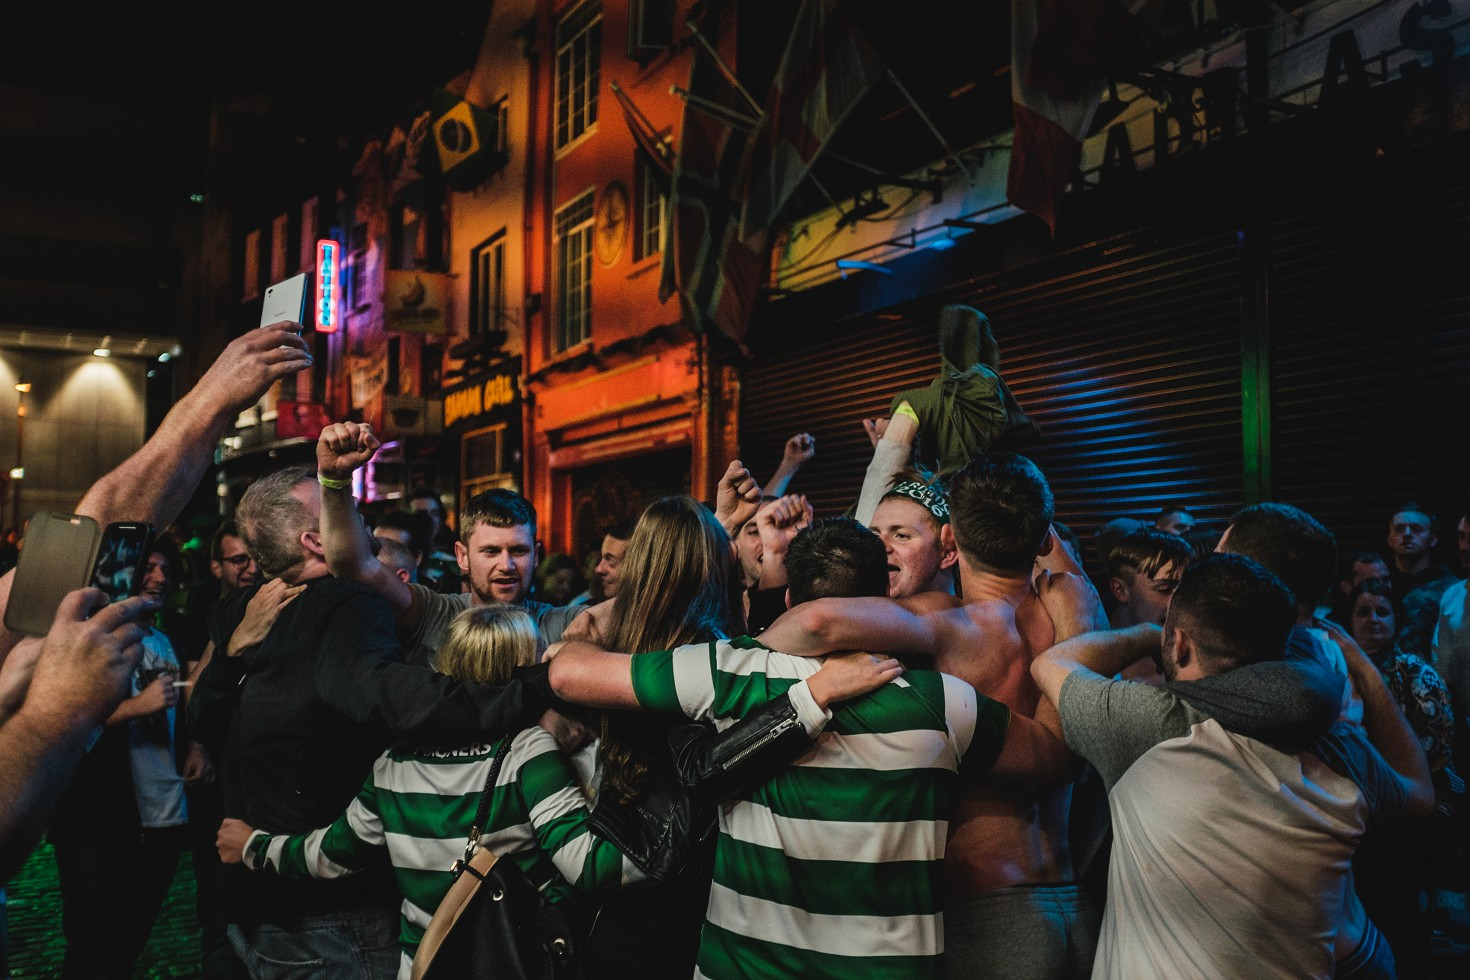 Celtic-Barca-Barcelona-Dublin-Temple-Bar-Aviva-Ireland-Fans (64 von 68)